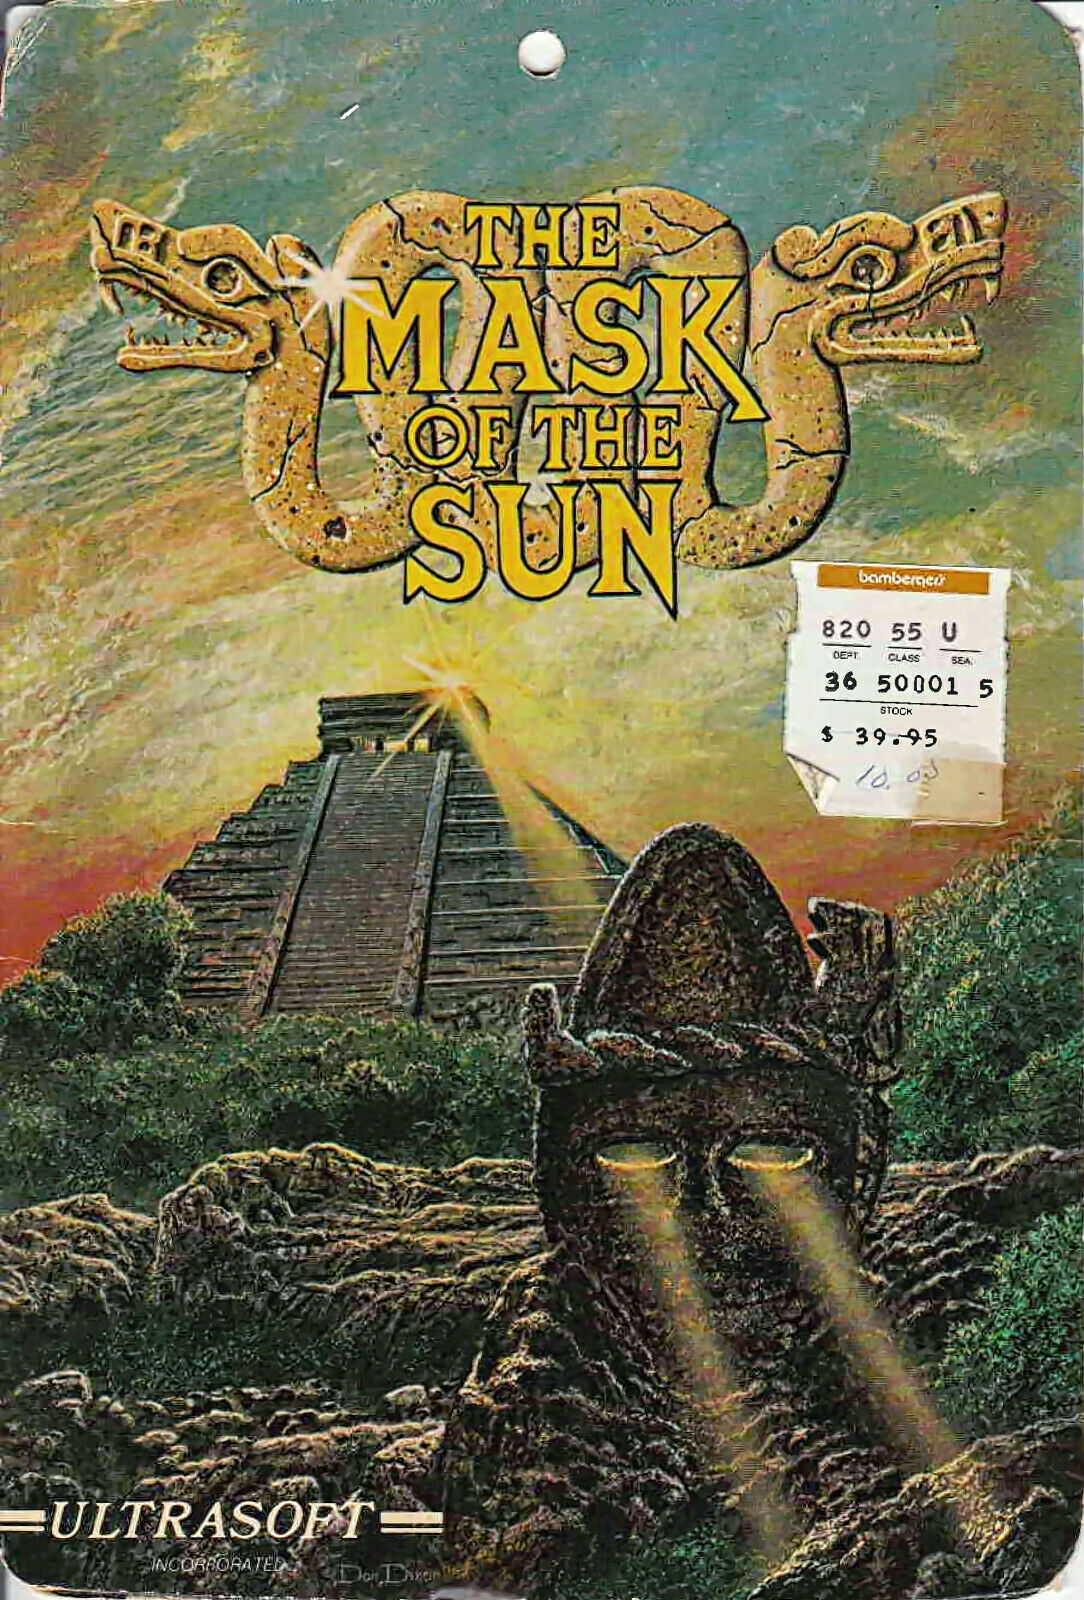 Computer Games - The Mask of the Sun for Apple II Ultrasoft vintage computer game 1982 Broderbund